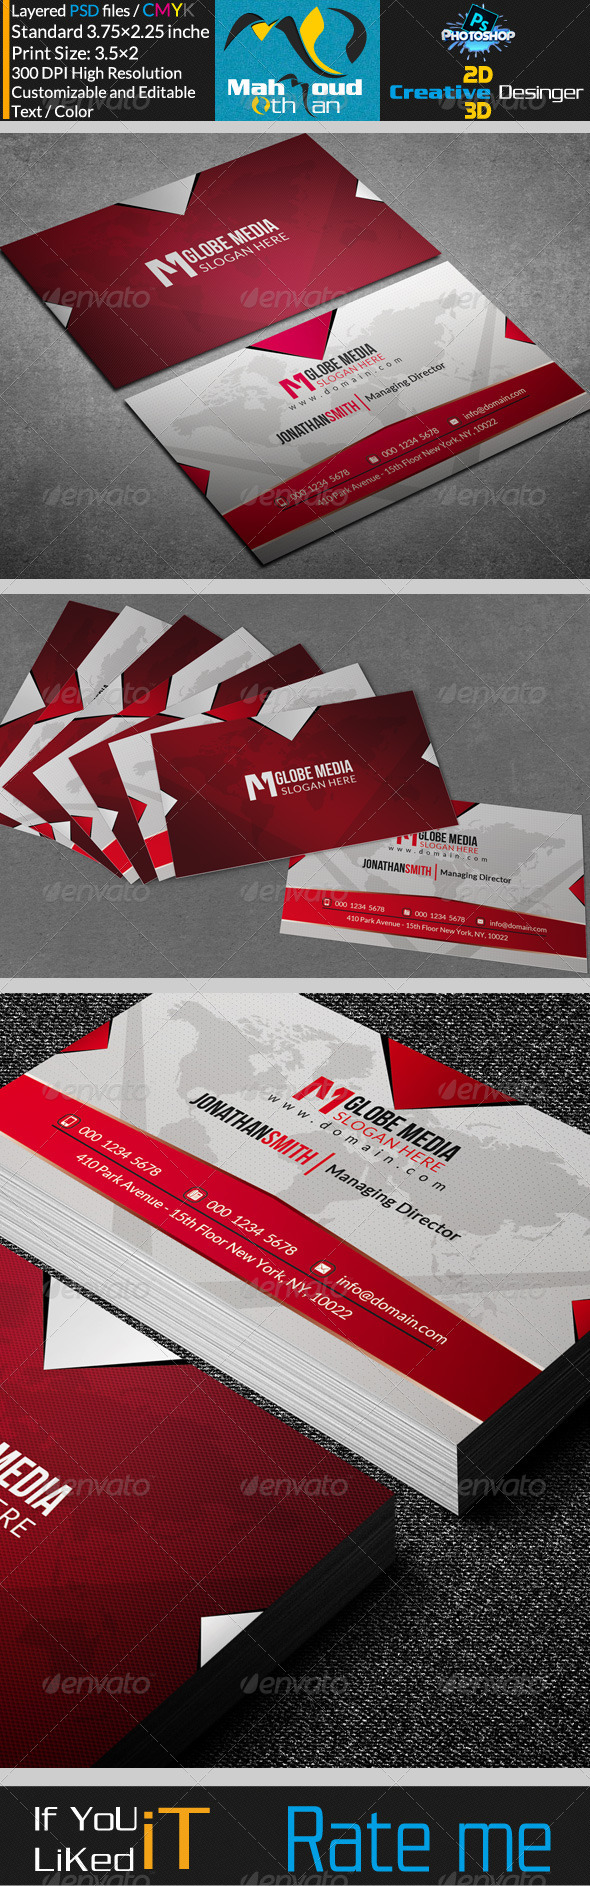 GraphicRiver Corportae Business Card V04 7339729